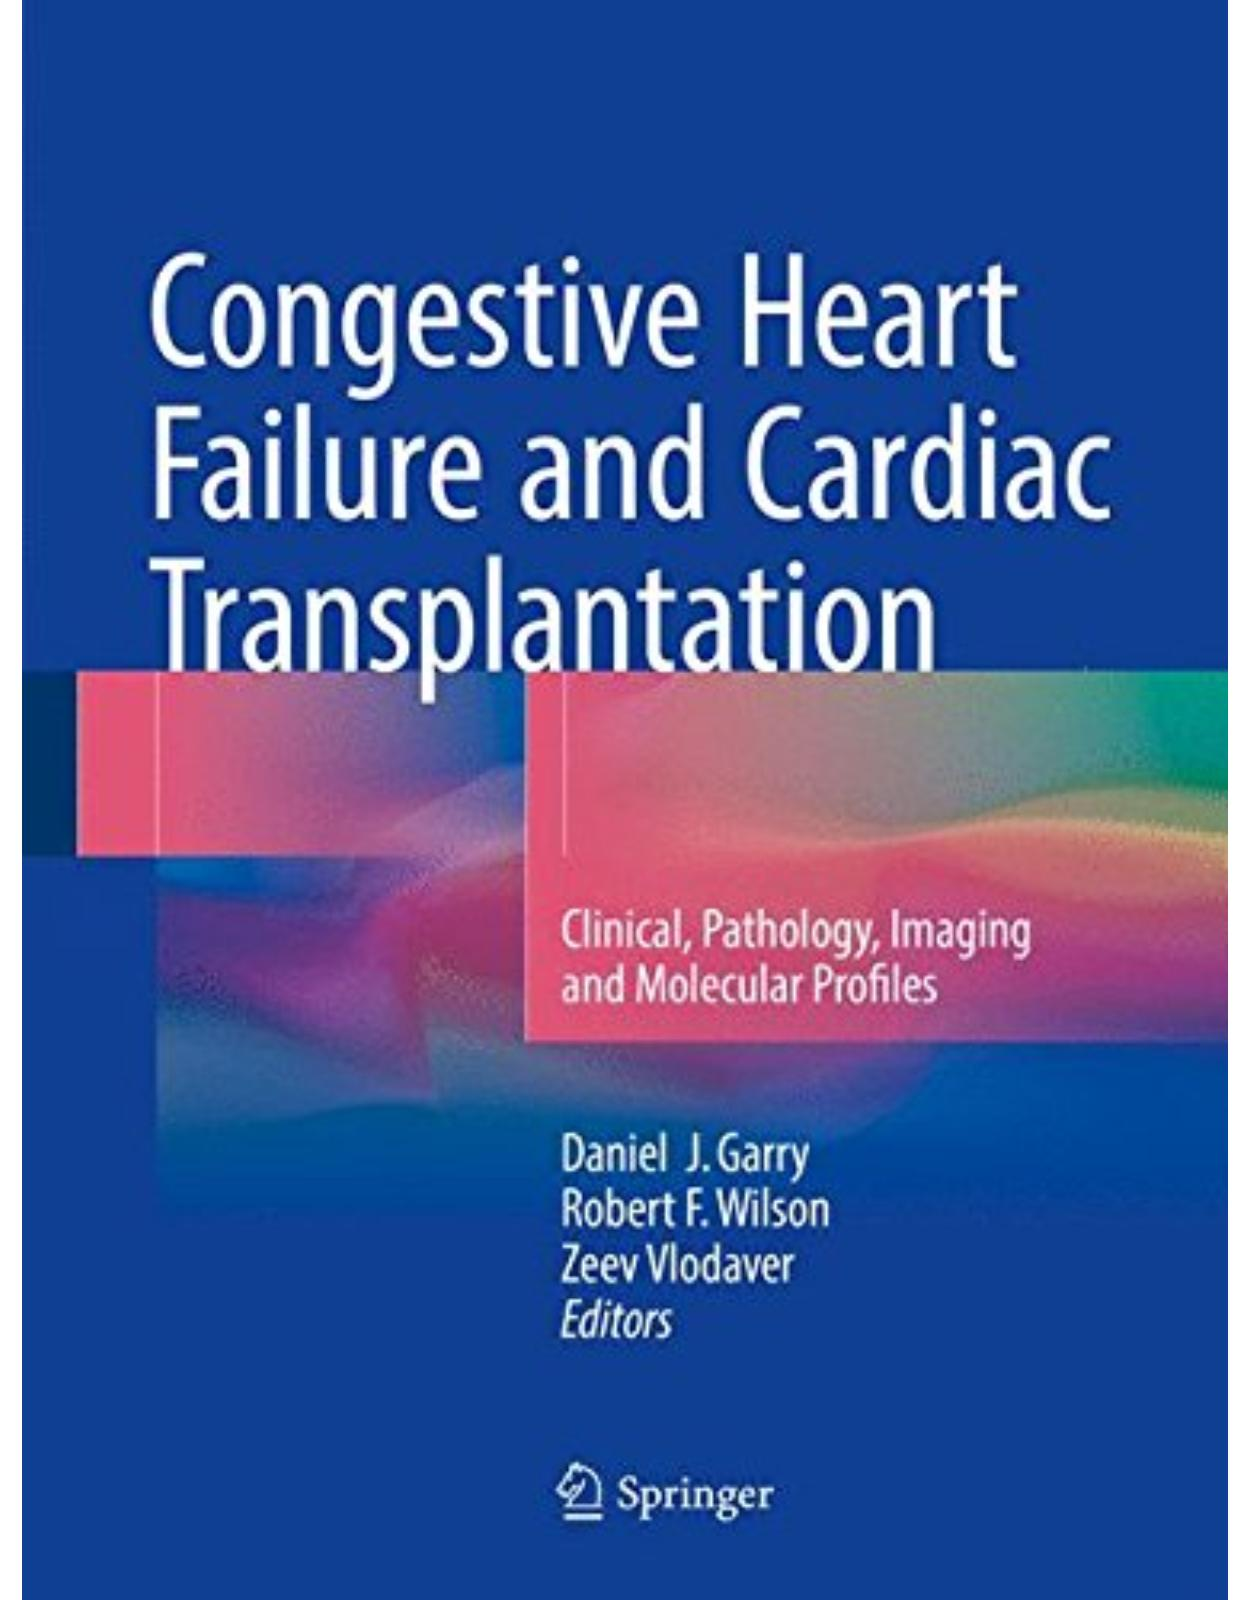 Congestive Heart Failure and Cardiac Transplantation: Clinical, Pathology, Imaging and Molecular Profiles